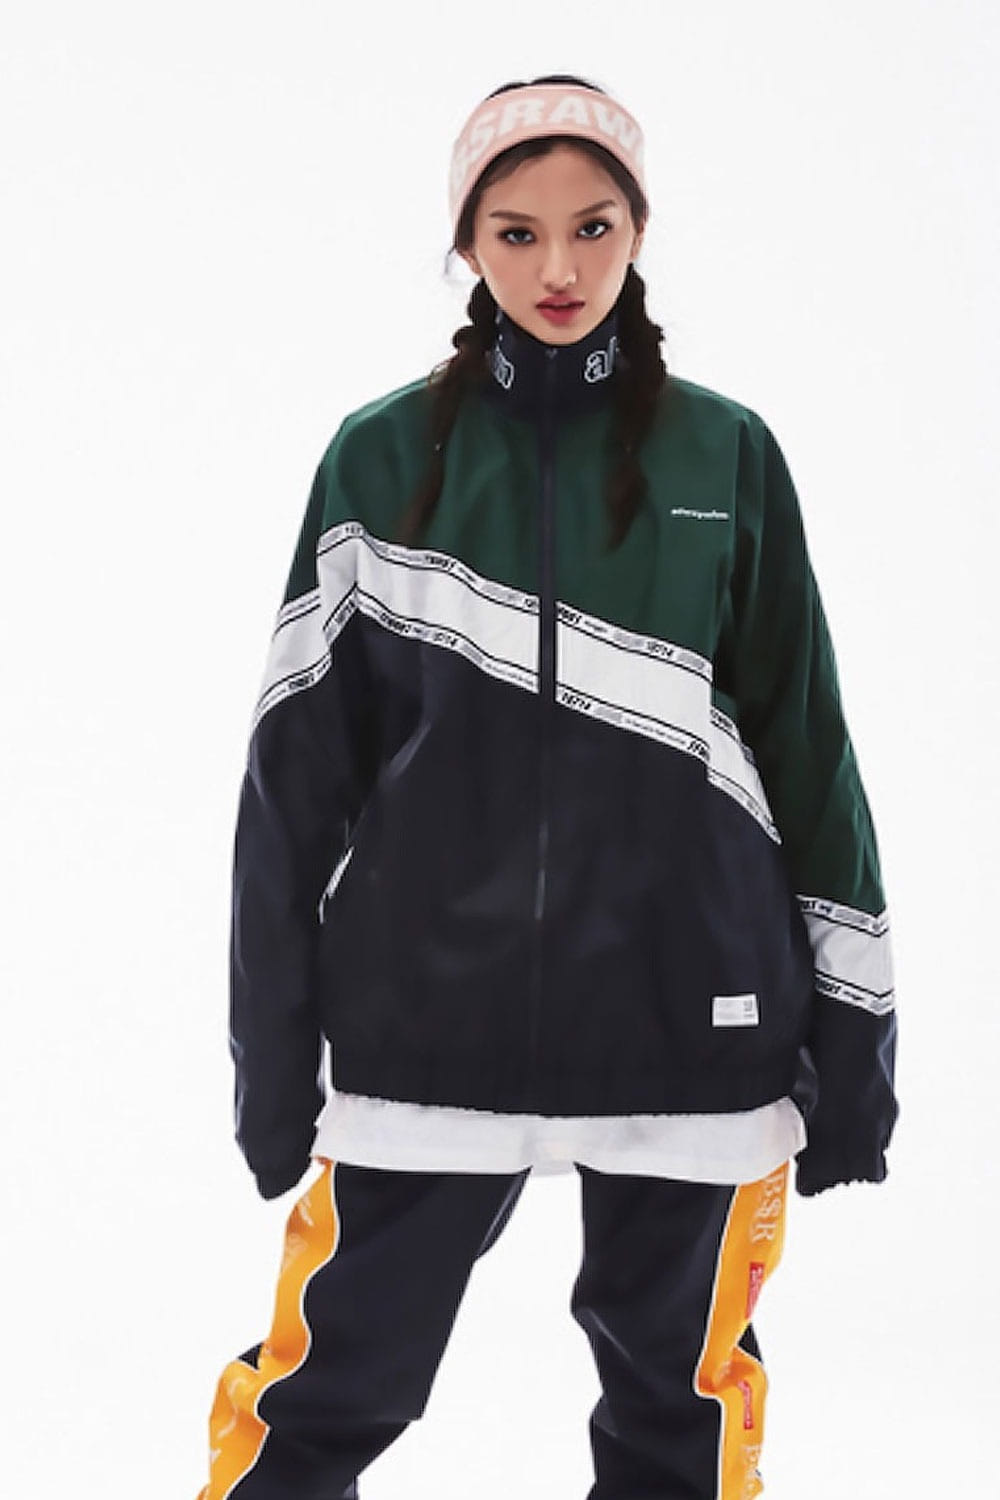 비에스래빗 남여공용 보드복 트랙 자켓 7BS801NV/NAVY 1819 BSRABBIT DIAGONAL LINE TRACK JACKET _A7BS801NV